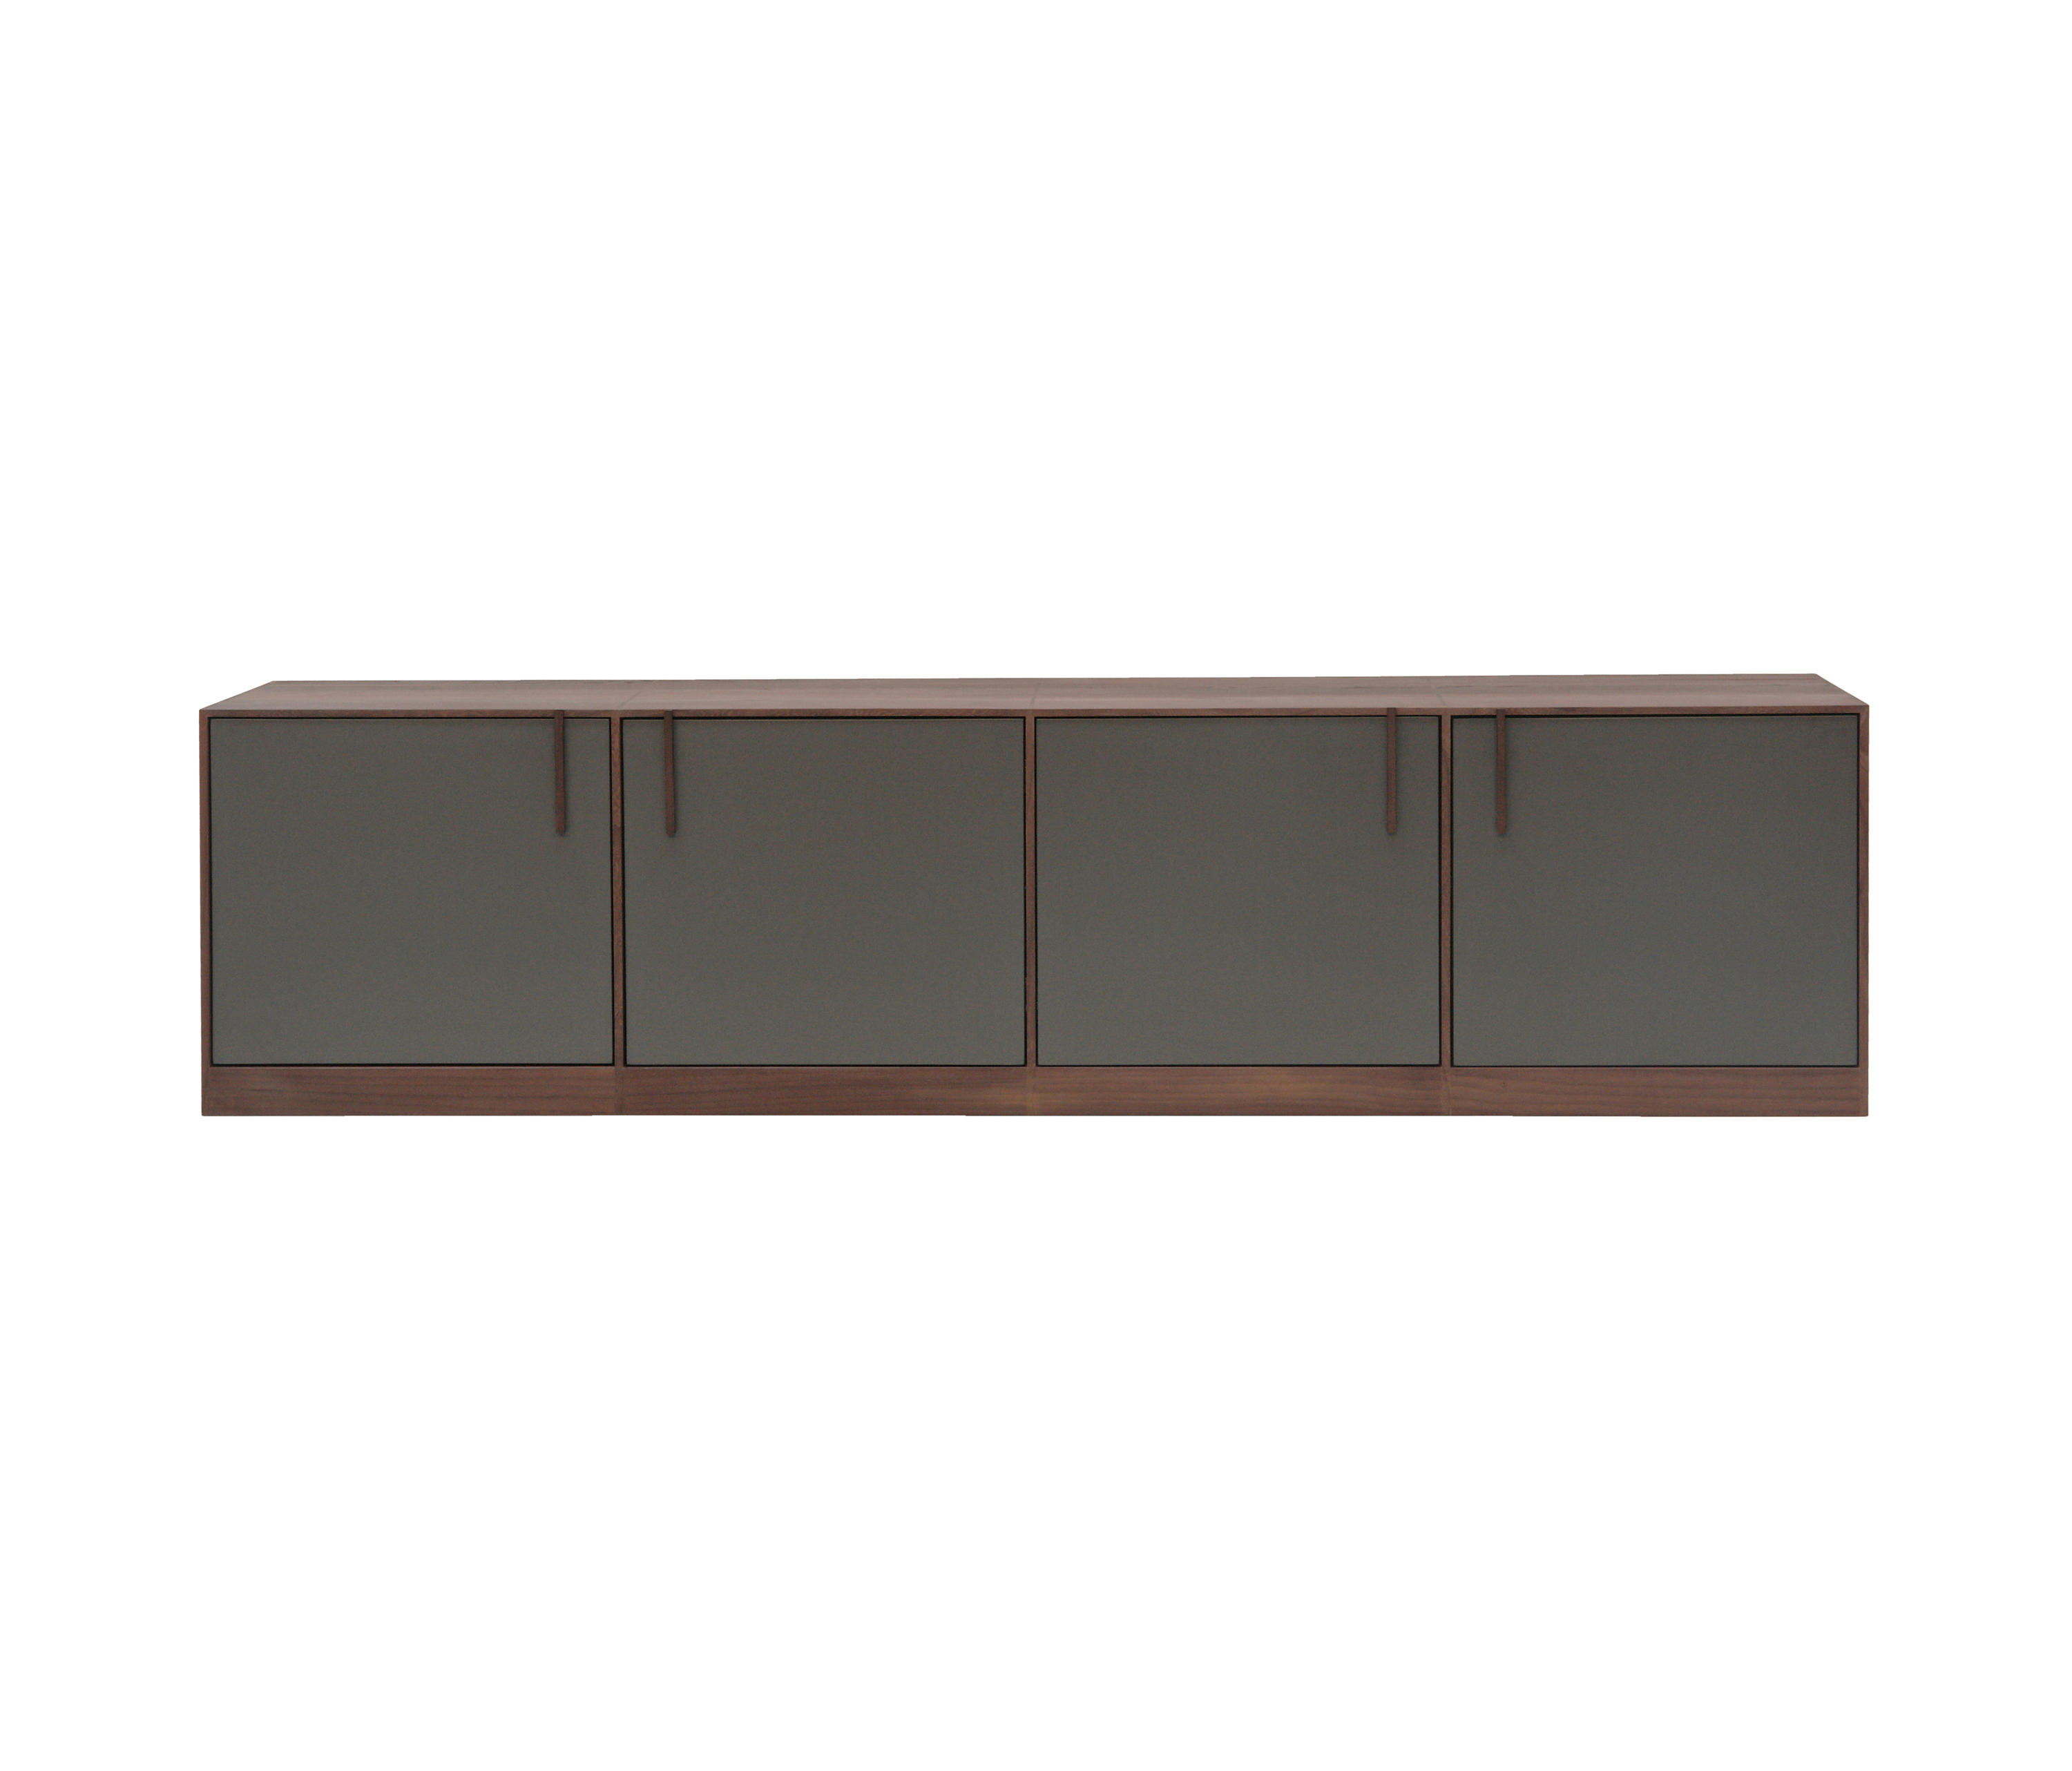 Hotze sideboard sideboards from pilat pilat architonic for Sideboard 250 cm